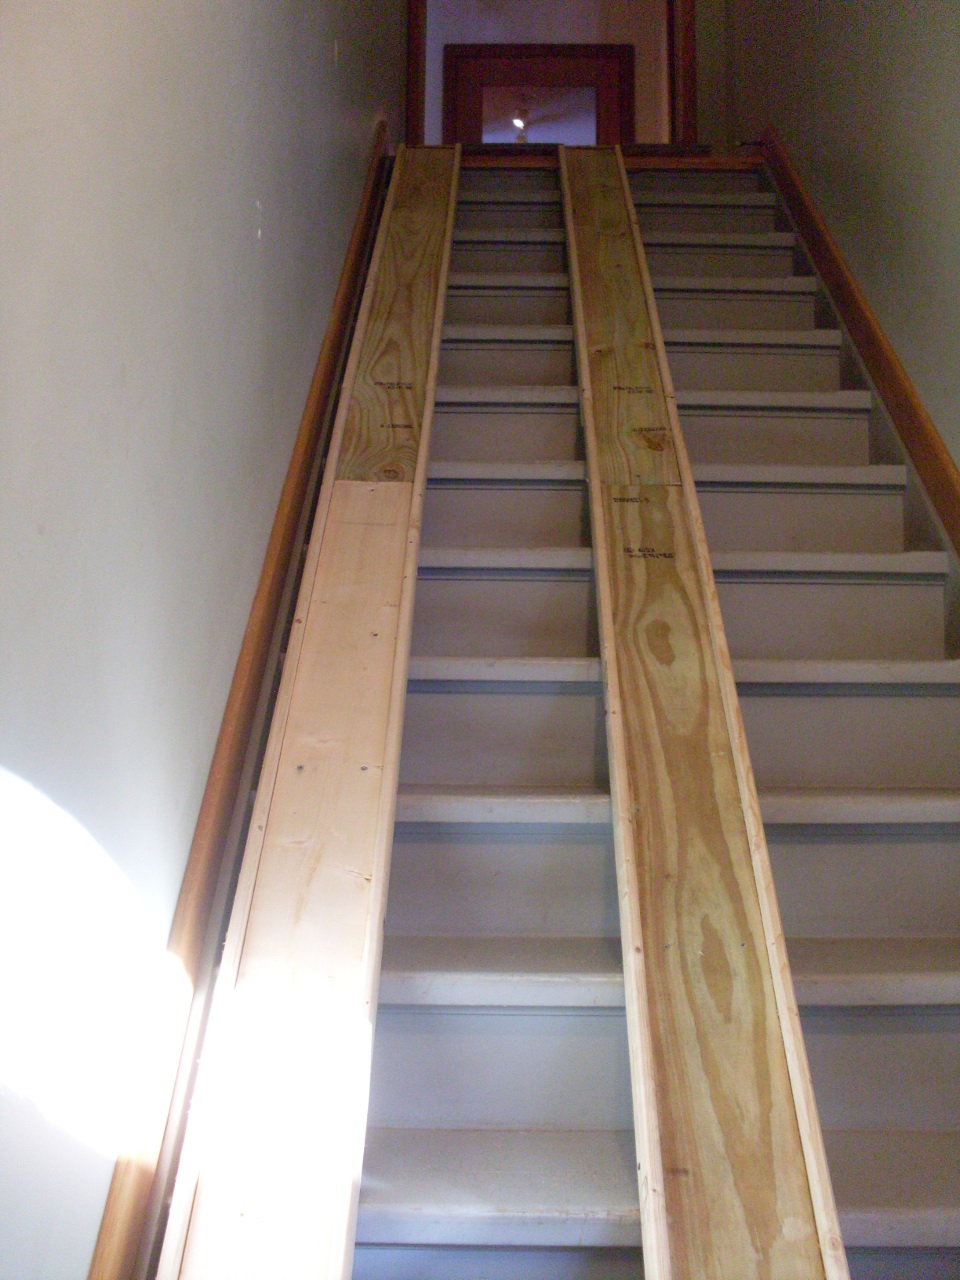 Incroyable Stair Pulley System Photos Freezer And Iyashix